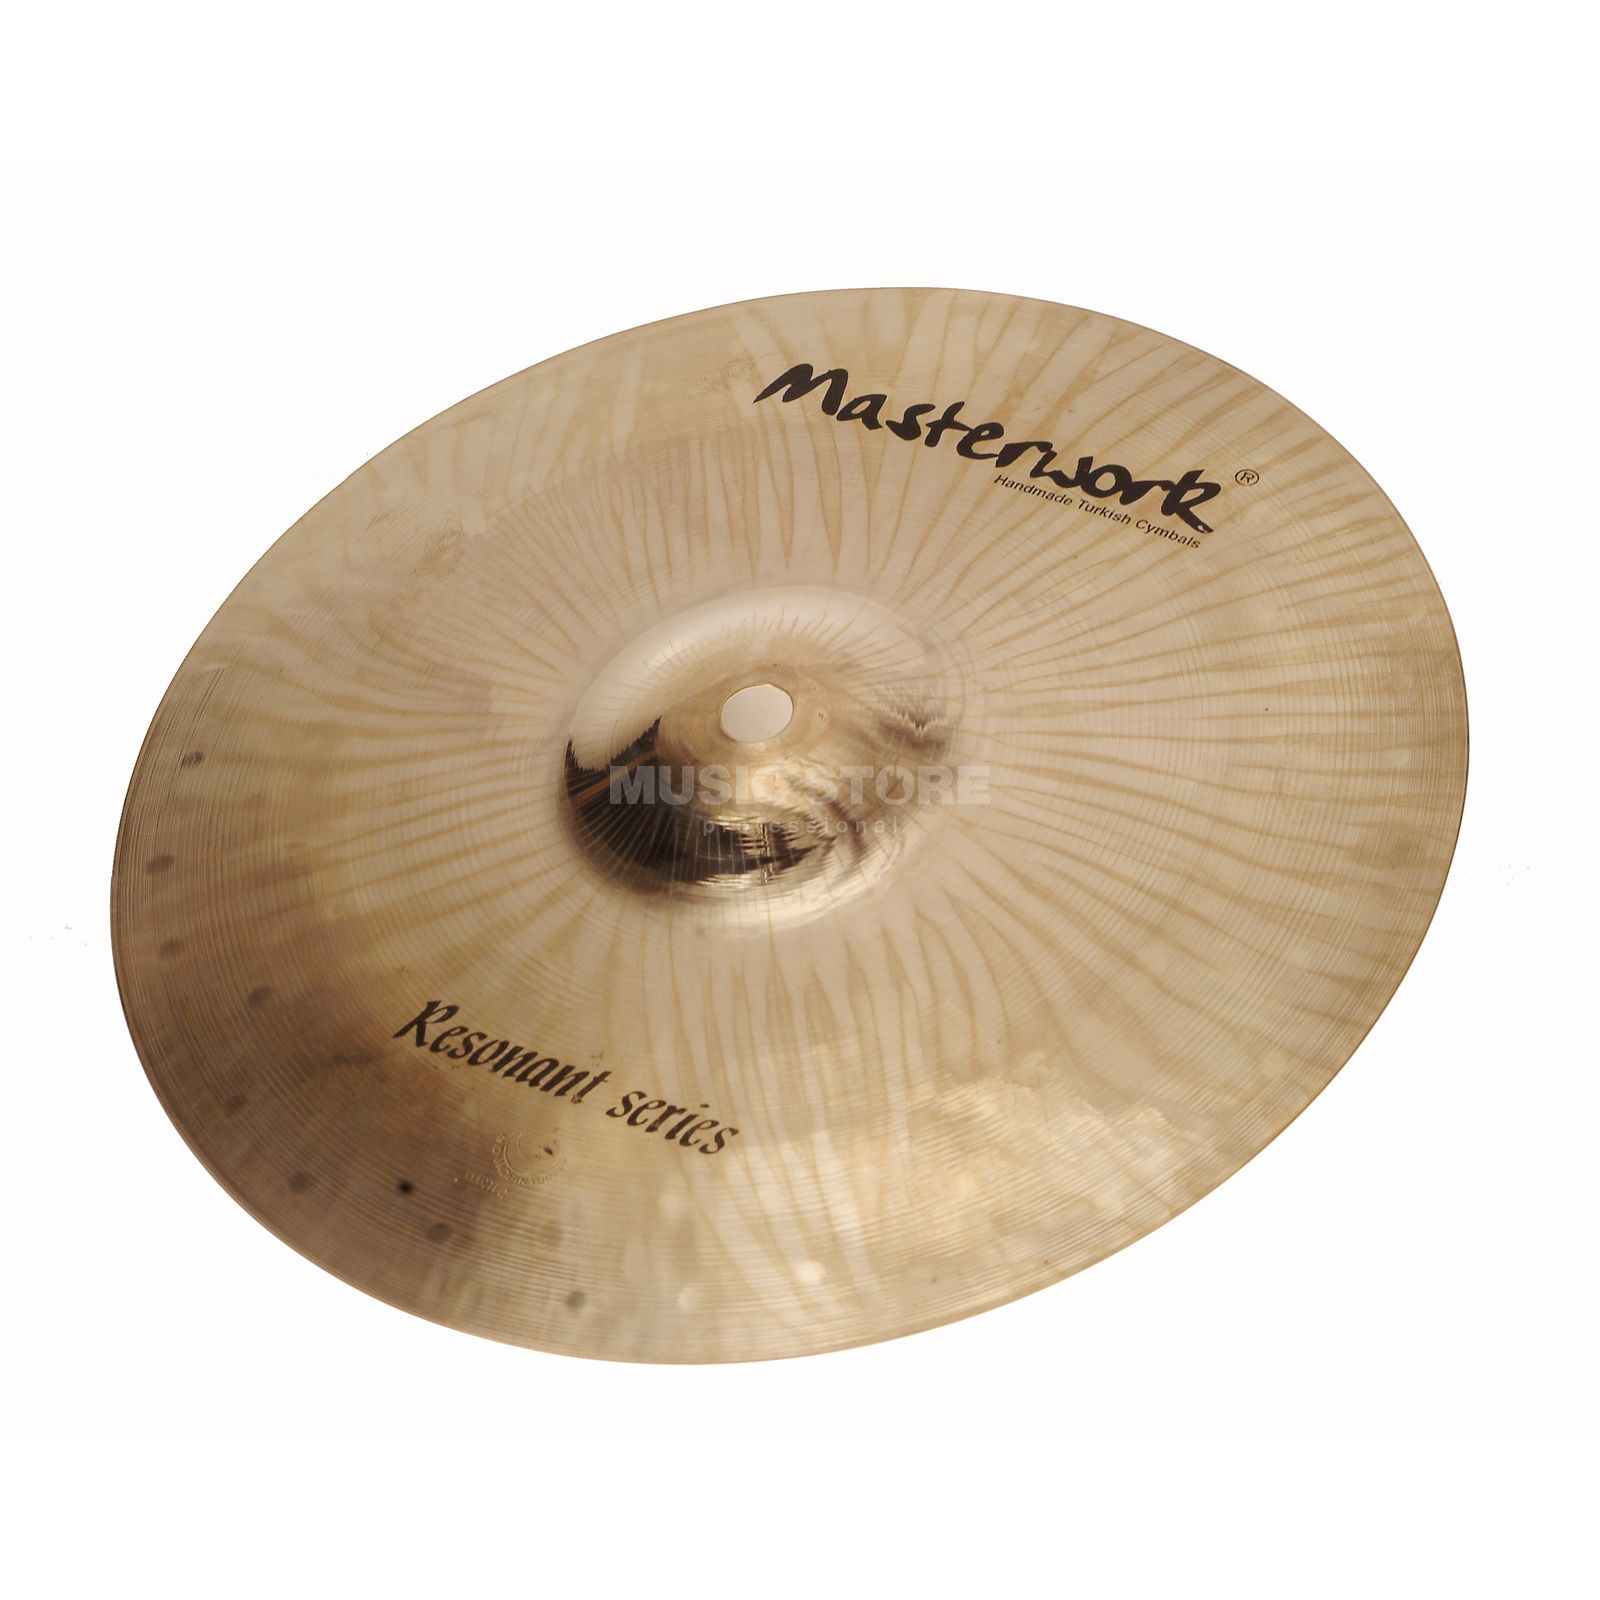 "Masterwork Resonant Splash 6"" Brilliant Finish Produktbild"